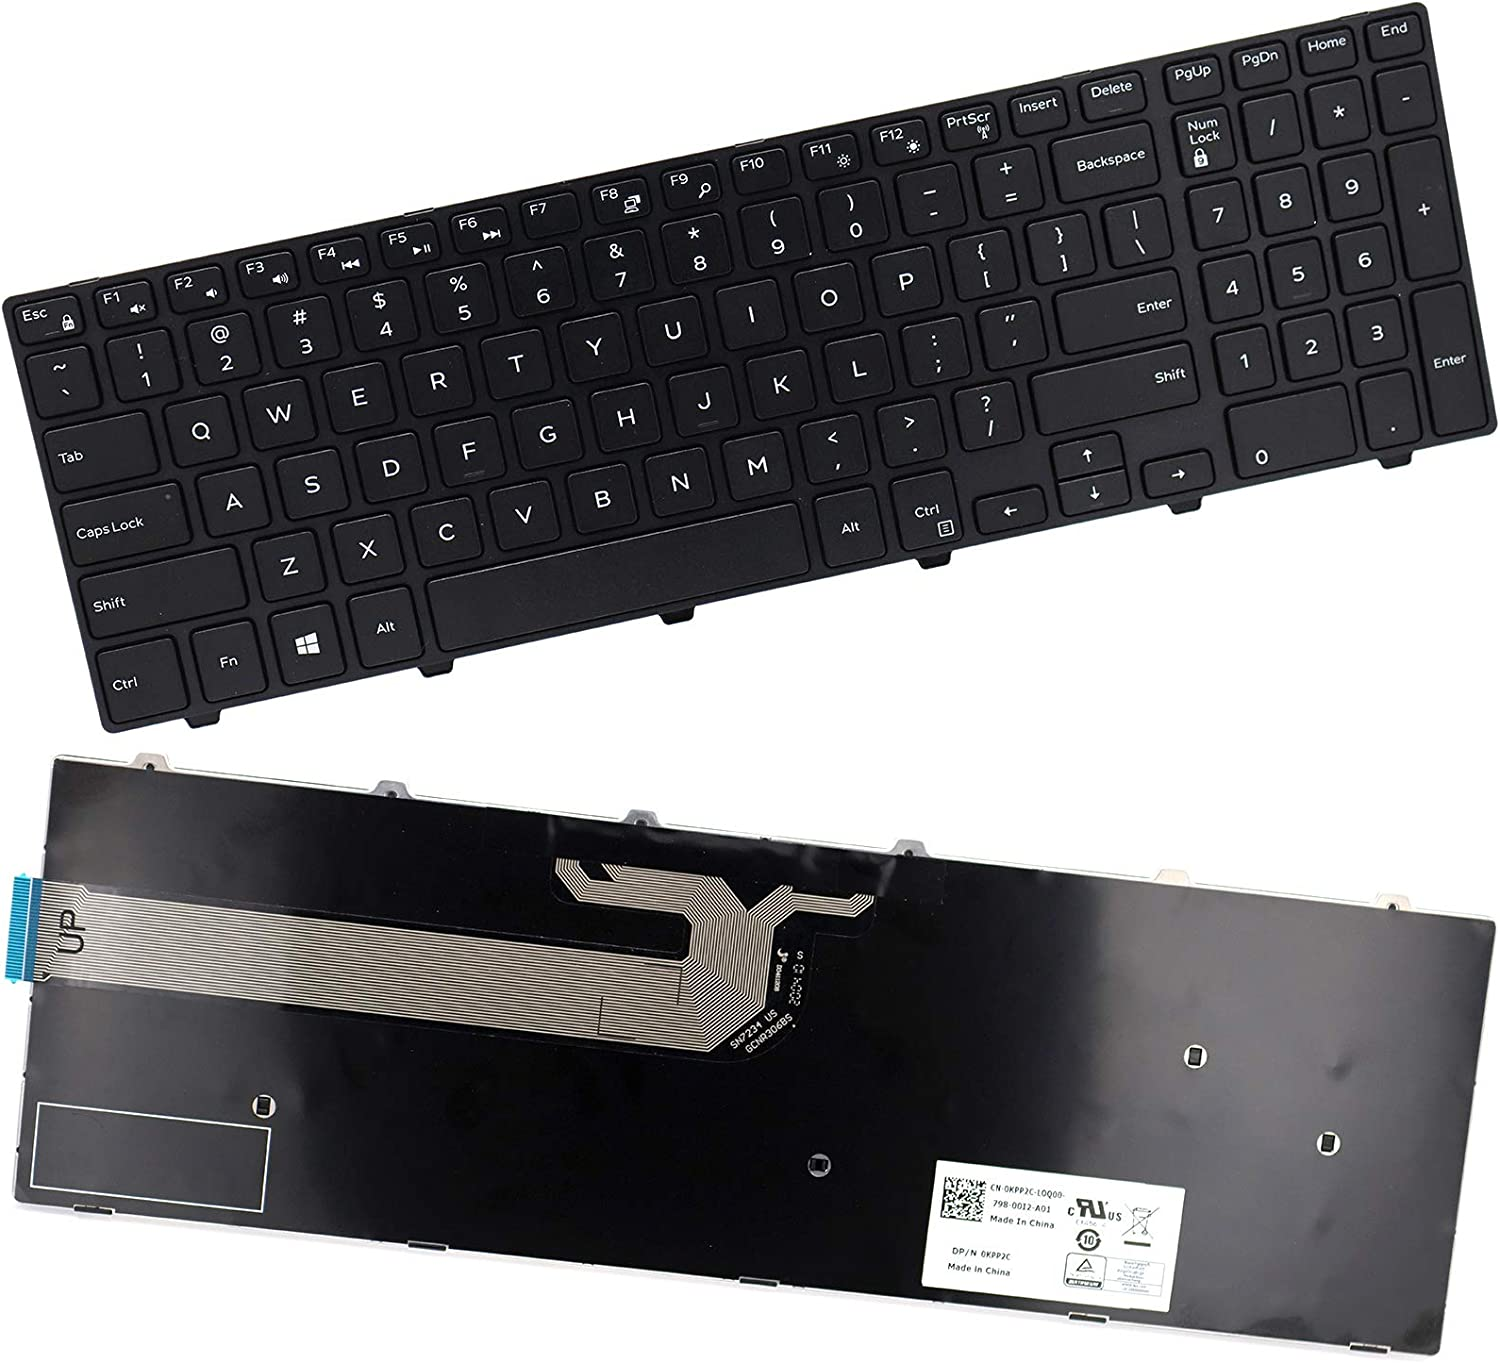 Deal4GO Replacement Keyboard (Non-Backlit) for Dell Inspiron 15 3541 3542 3543 3551 3552 5542 5545 5547 5755 5551 5552 5557 5558 5559 5758 5759 7557 7559 17 5748 5749 5755 5758 5759 0KPP2C JYP58